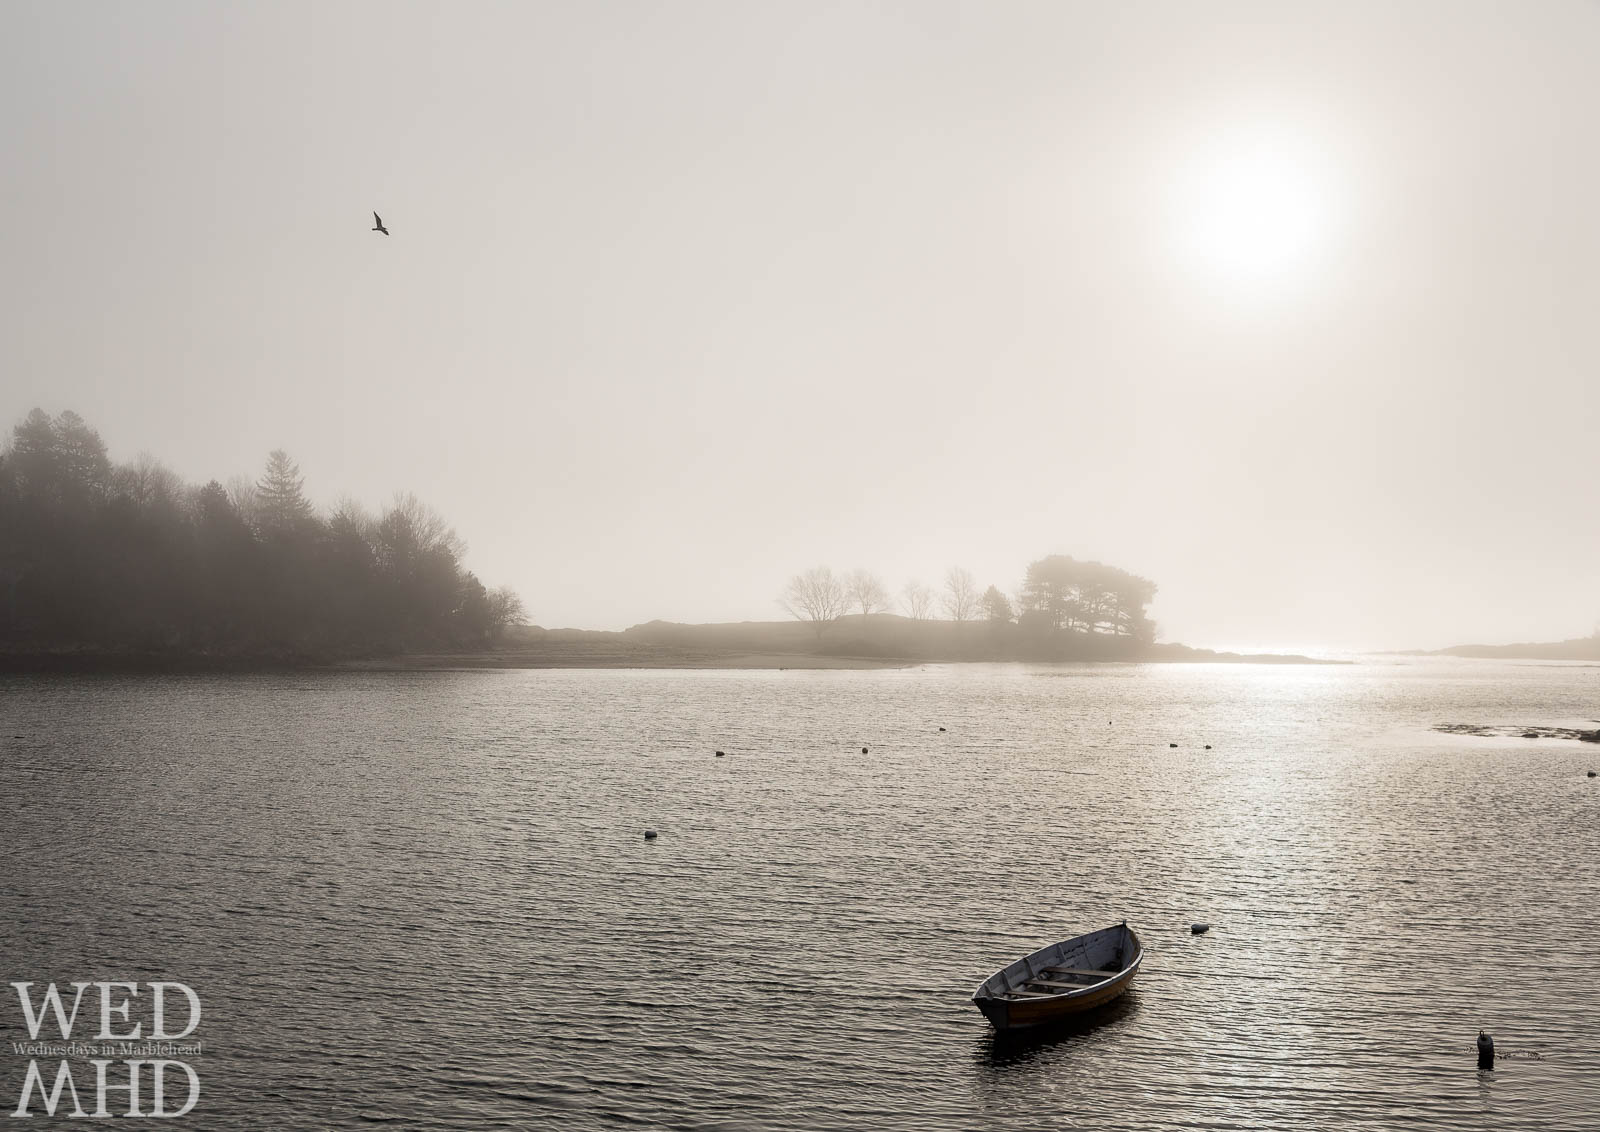 Sunlight is captured burning through the fog at Little Harbor above a lone moored boat